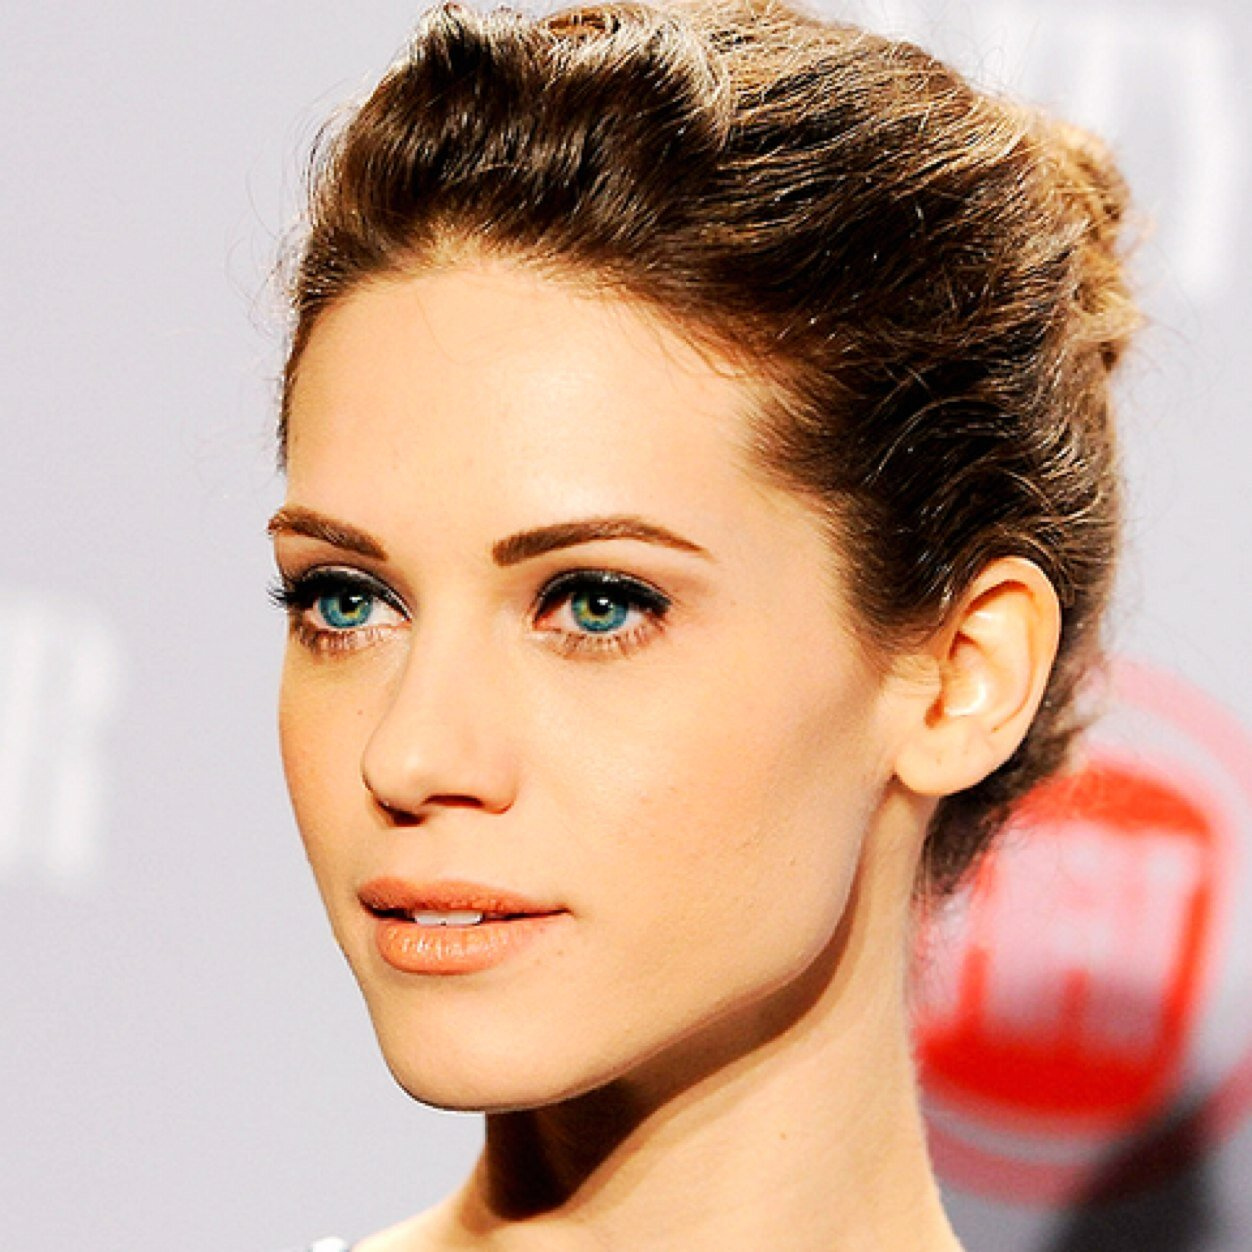 1252x1252 > Lyndsy Fonseca Wallpapers